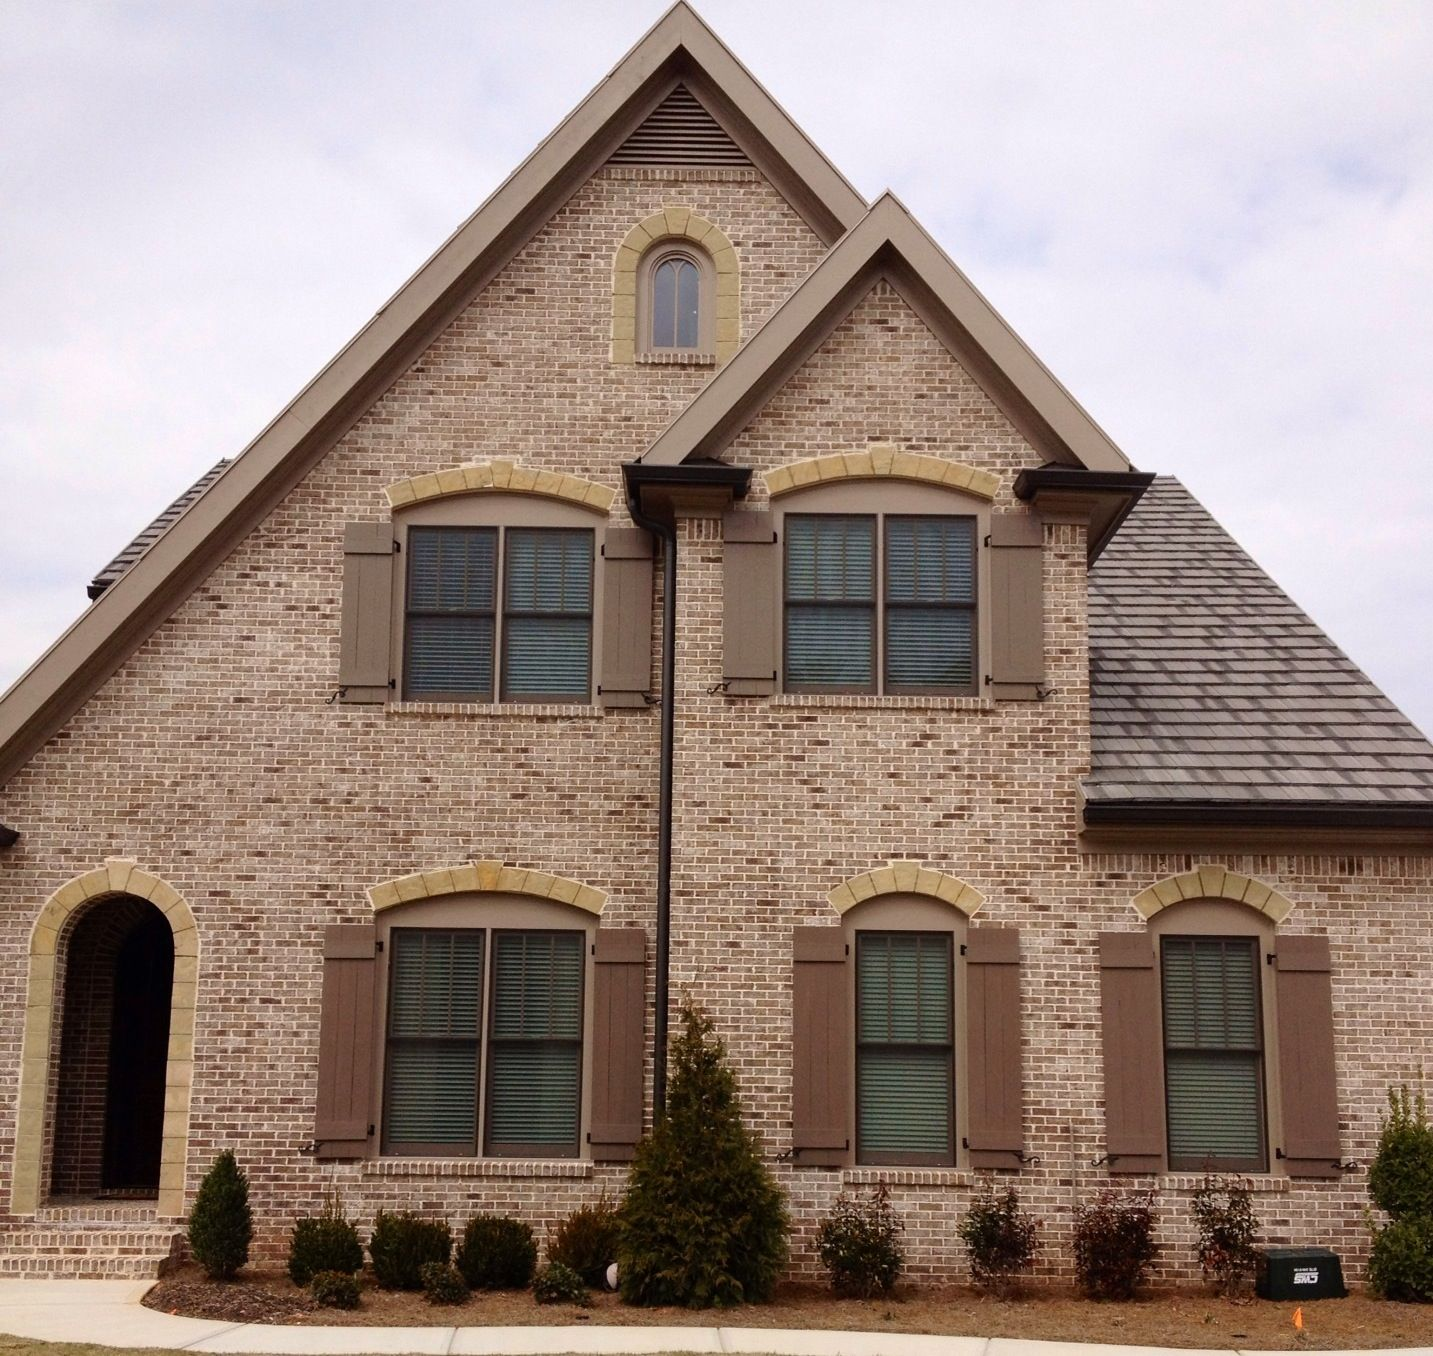 West contemporary exterior raleigh by triangle brick company - Stone Chase Brick Anti Buff Mortar